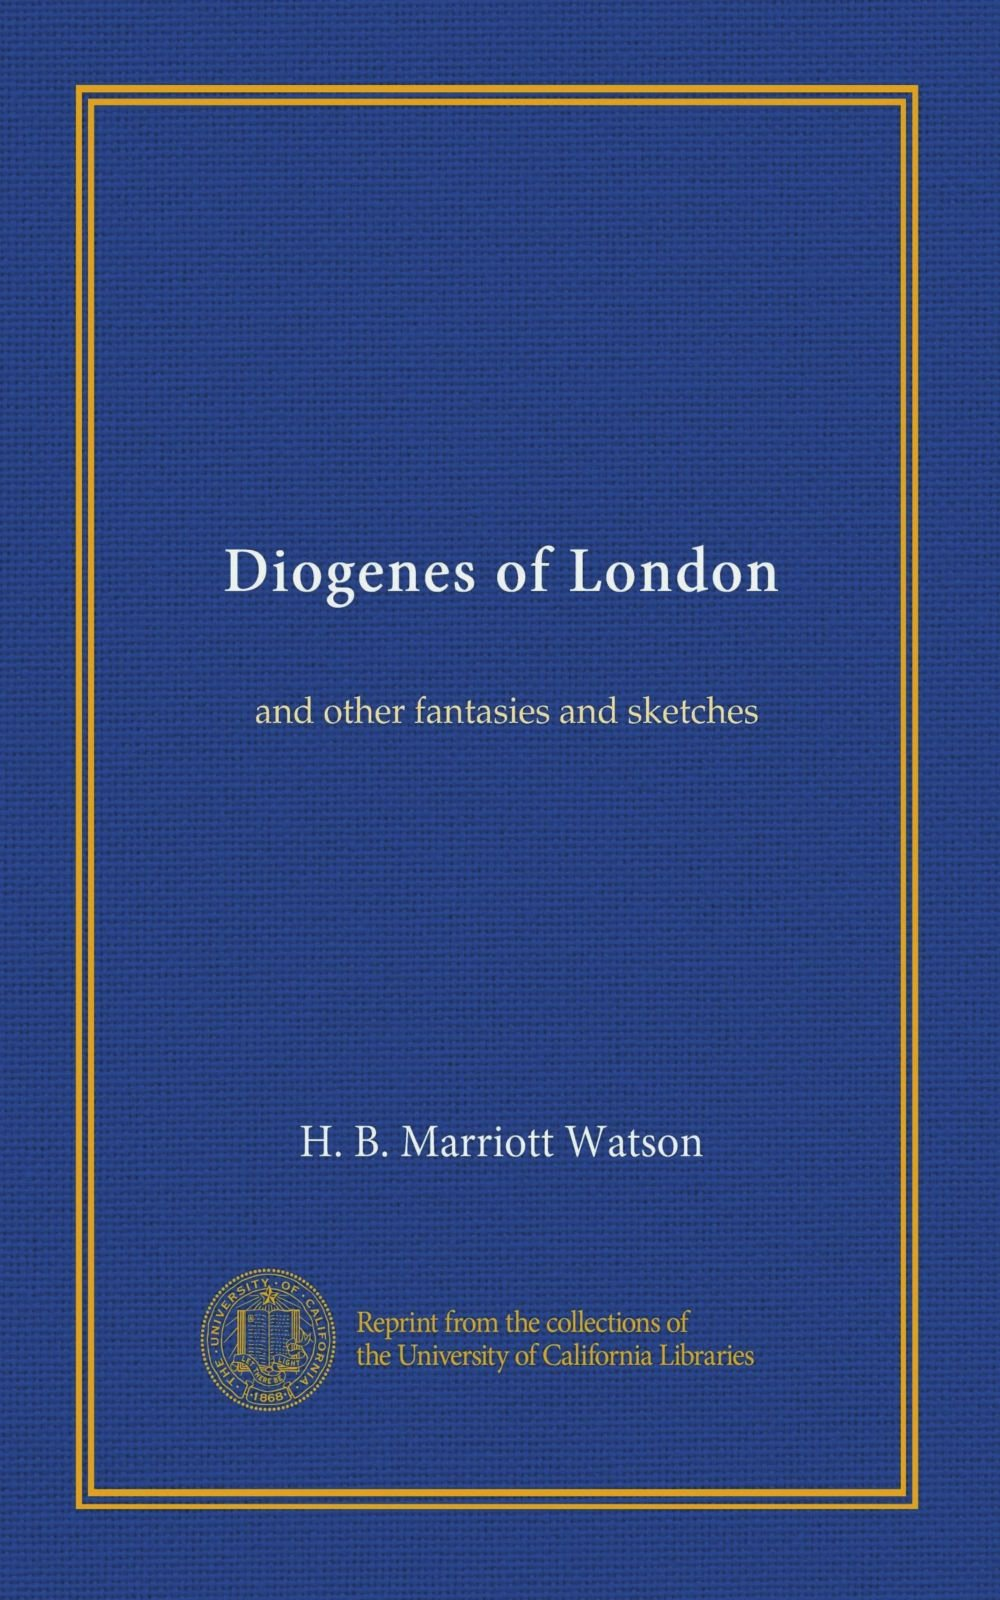 Diogenes of London: and other fantasies and sketches pdf